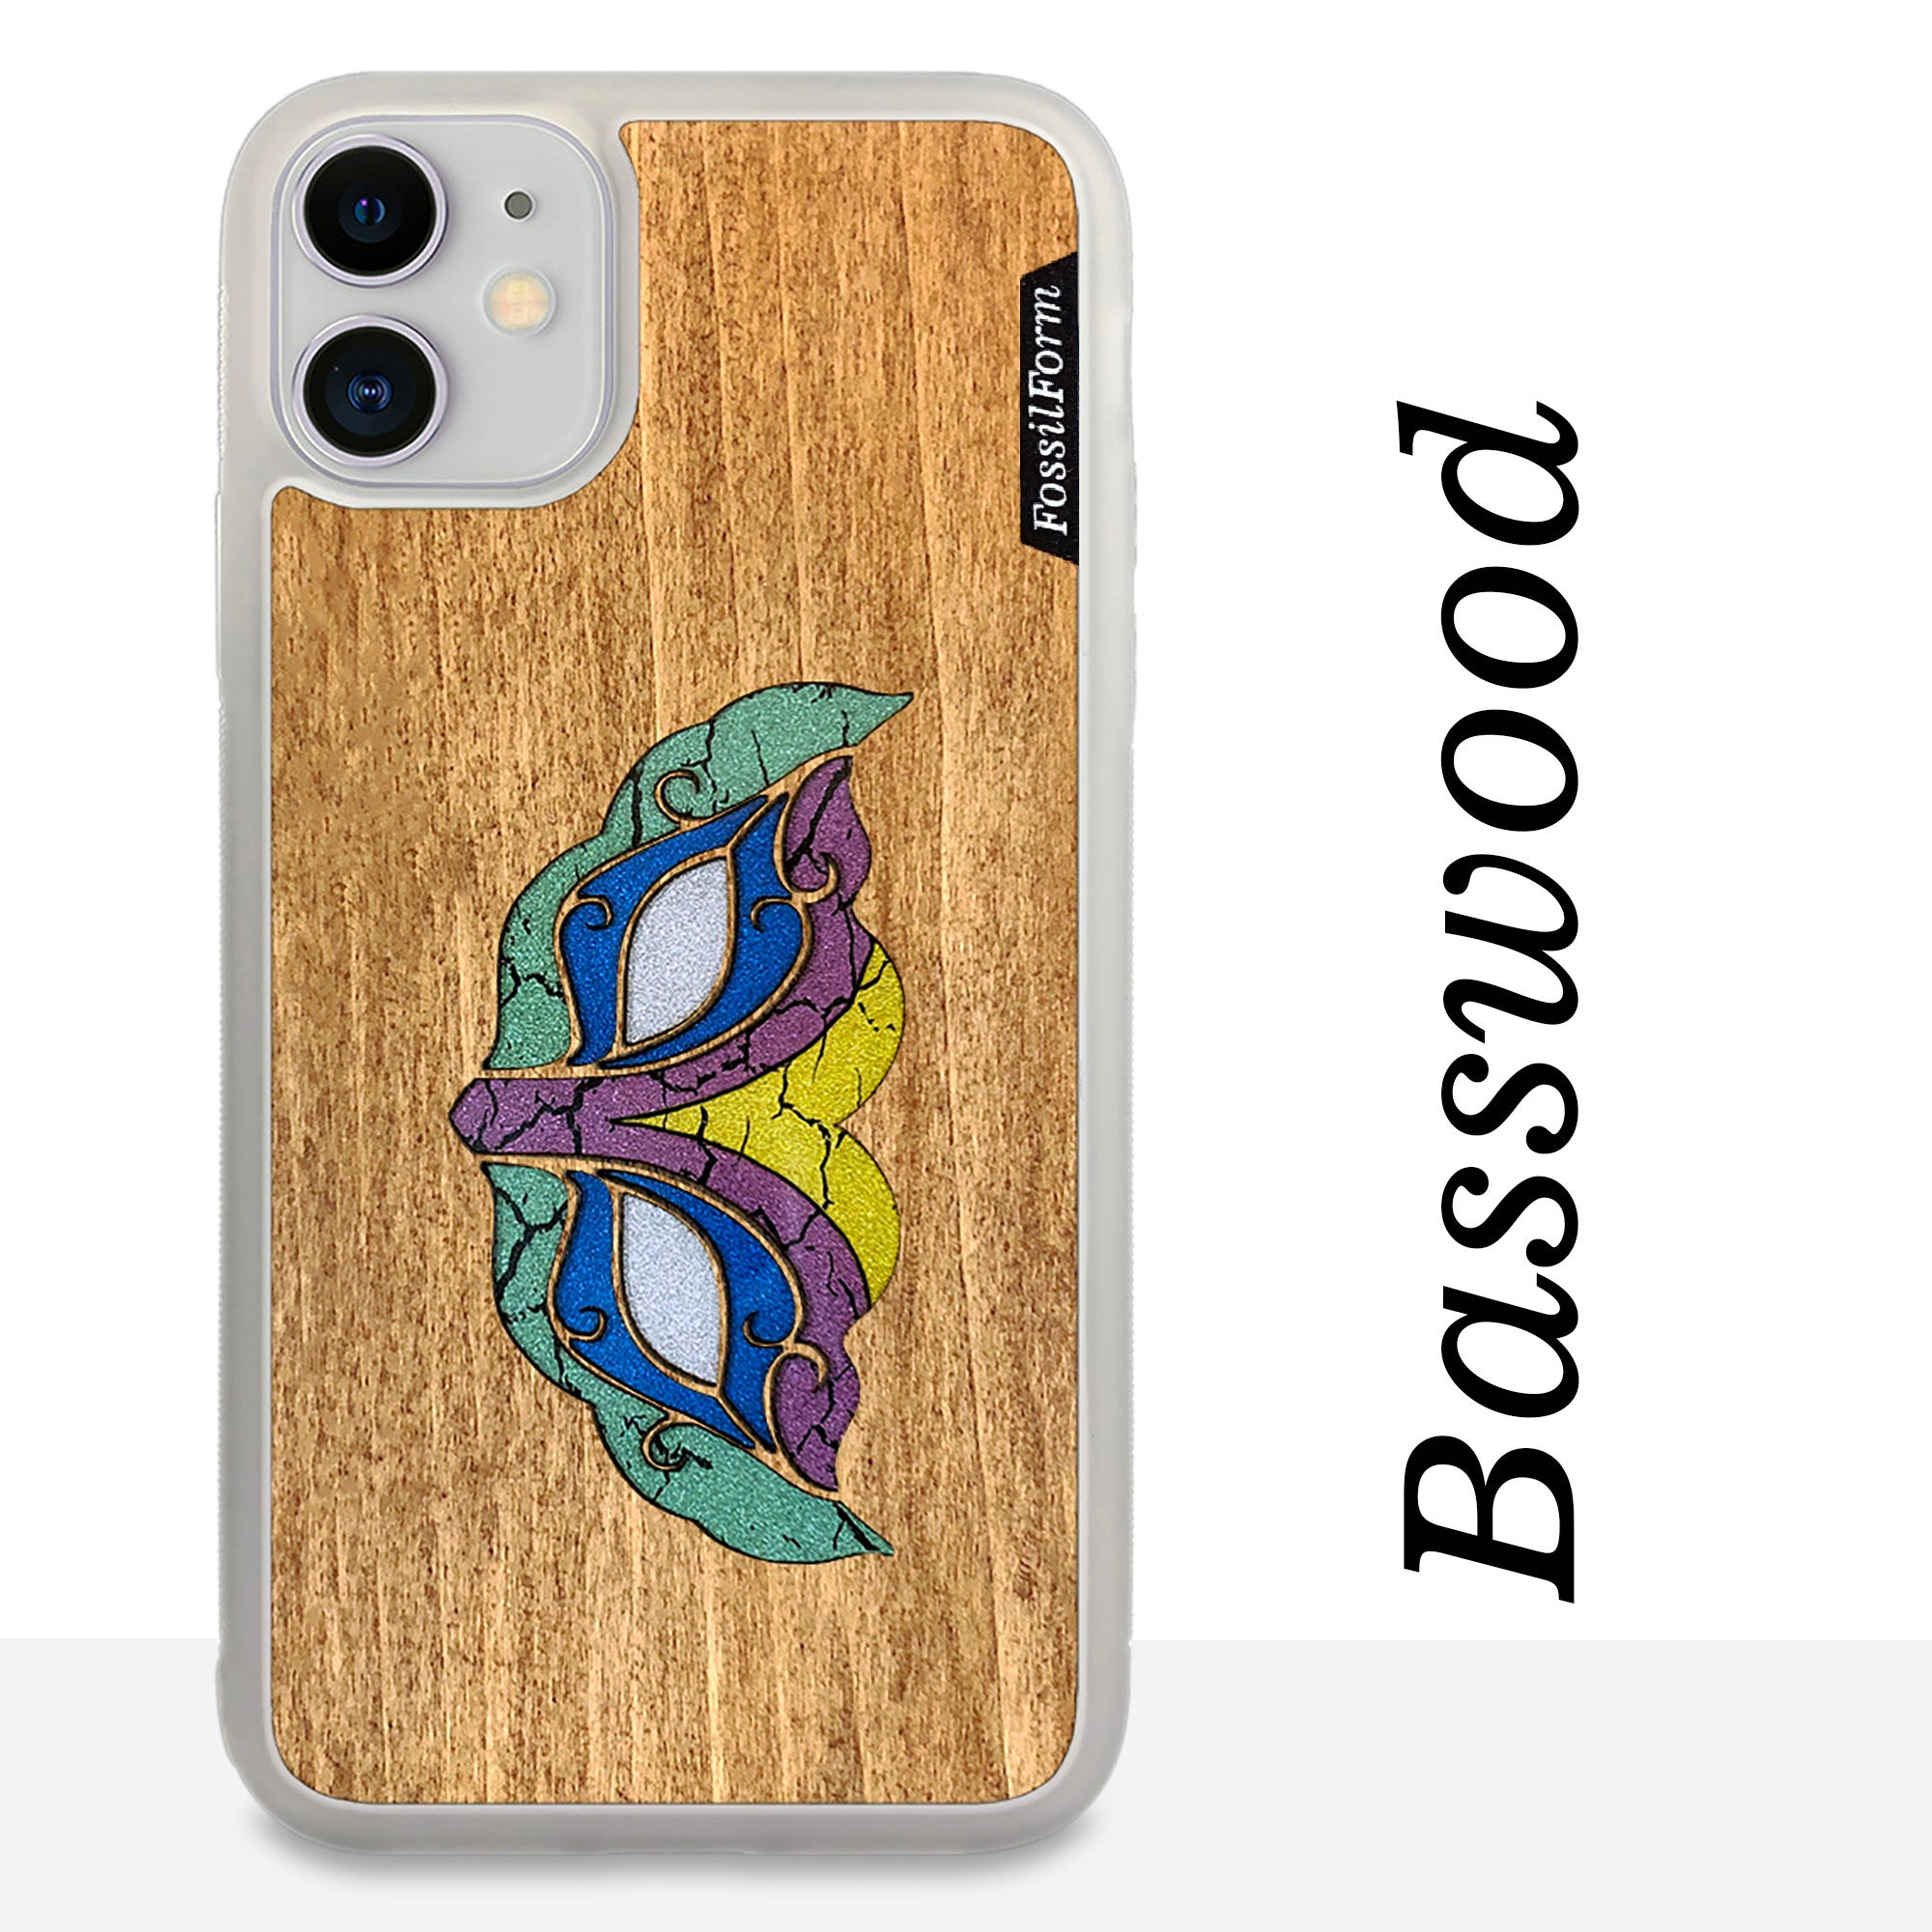 Masquerade Mask - Wood & Resin Case - White